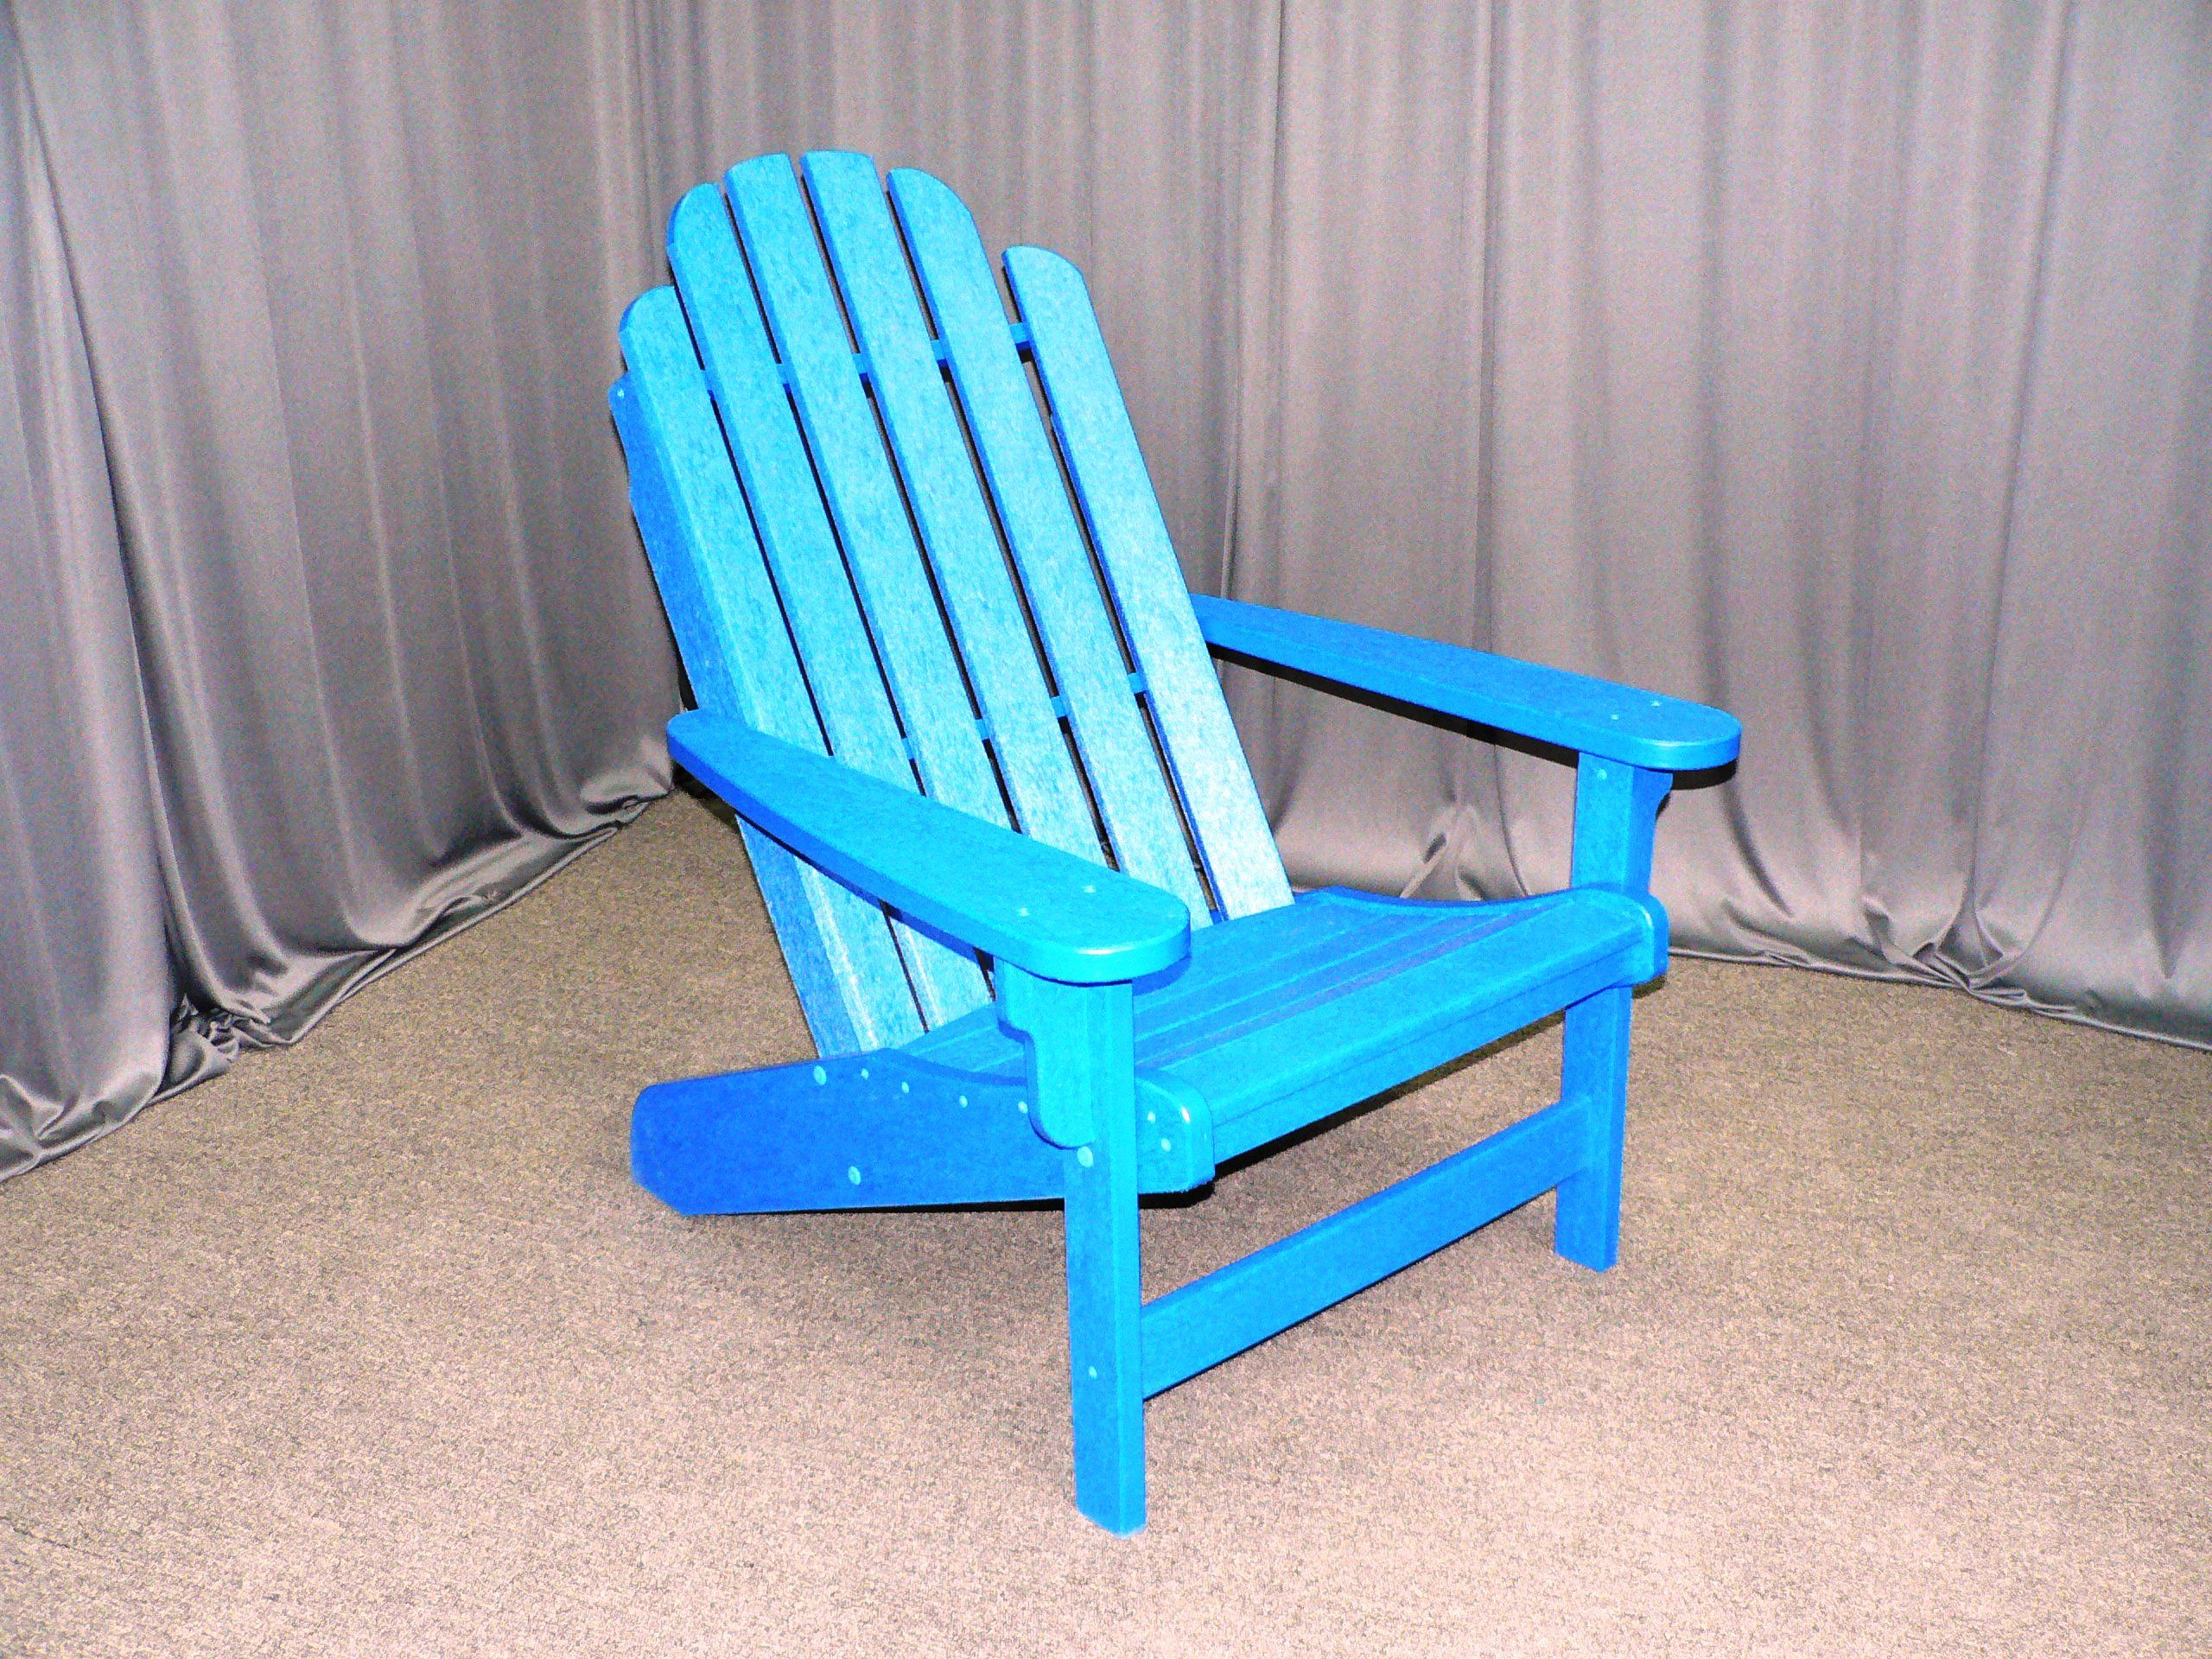 Breezesta Is One Of The First Real Green Outdoor Furniture Companies.  Breezesta Uses Recycled Plastics